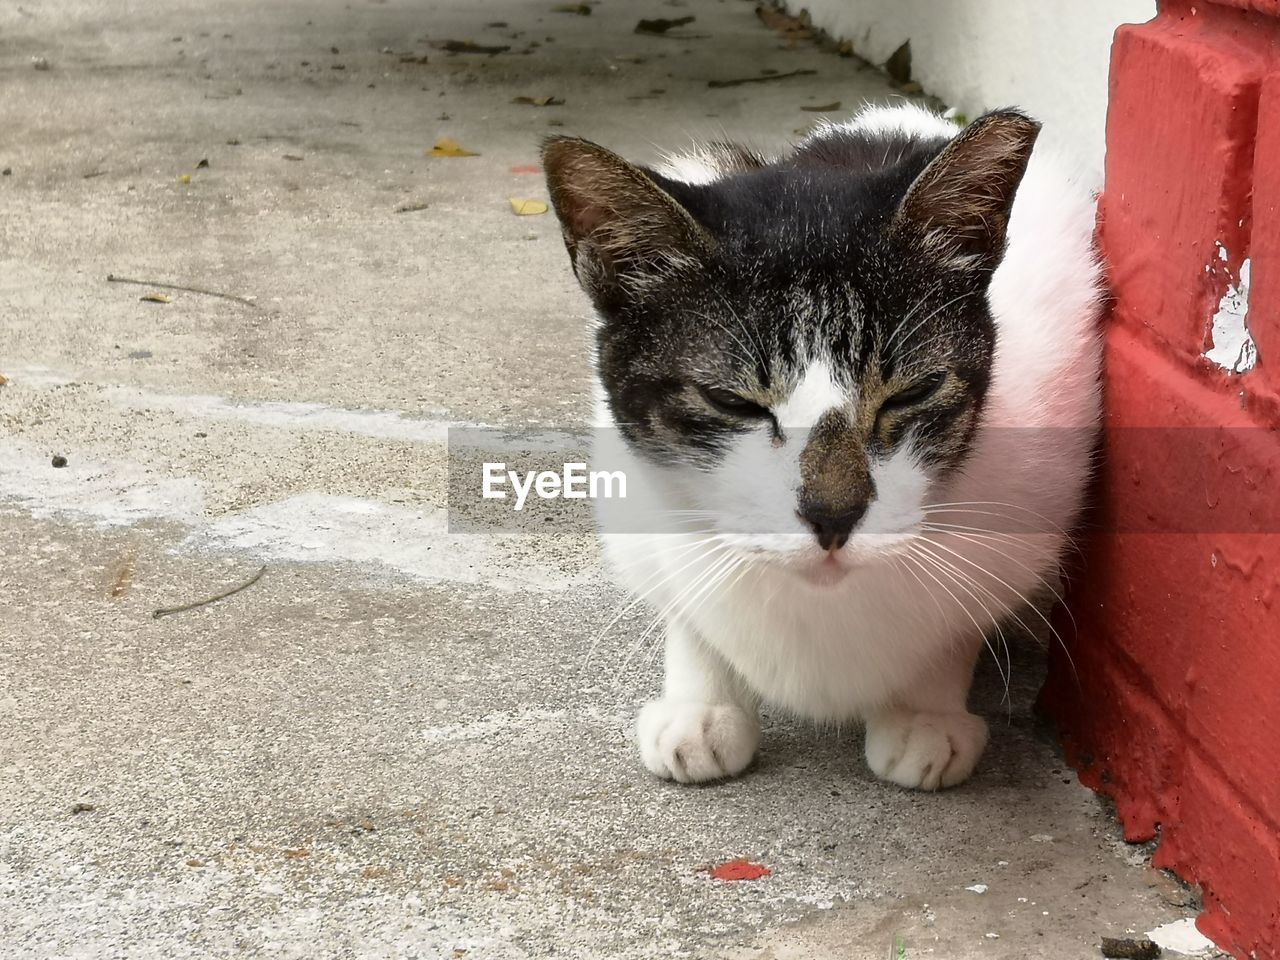 cat, pets, mammal, feline, domestic, one animal, domestic animals, domestic cat, vertebrate, day, no people, whisker, portrait, relaxation, close-up, footpath, looking at camera